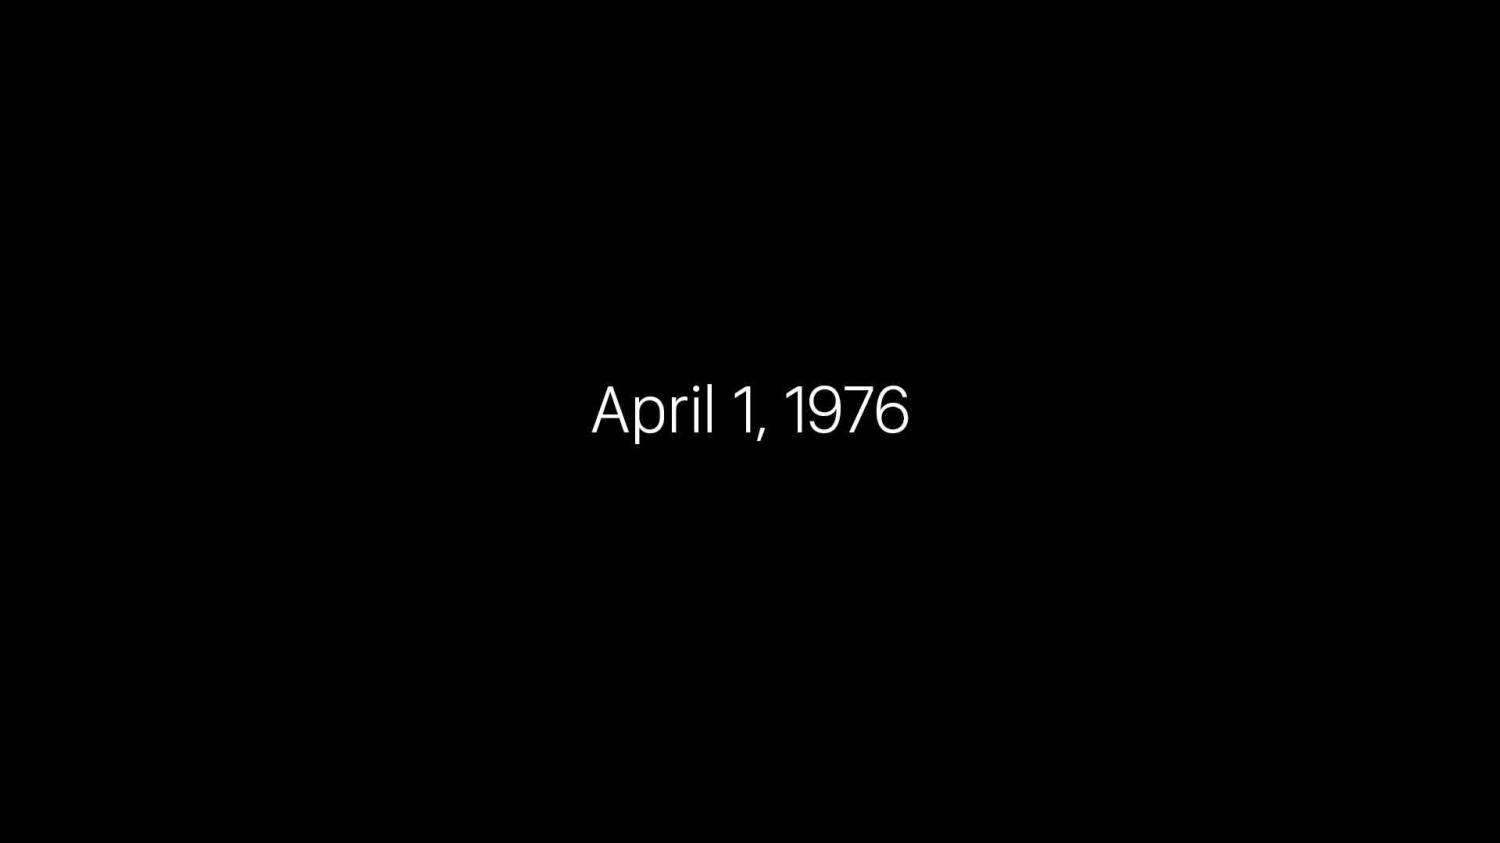 Музыка из рекламы Apple - 40 Years in 40 Seconds